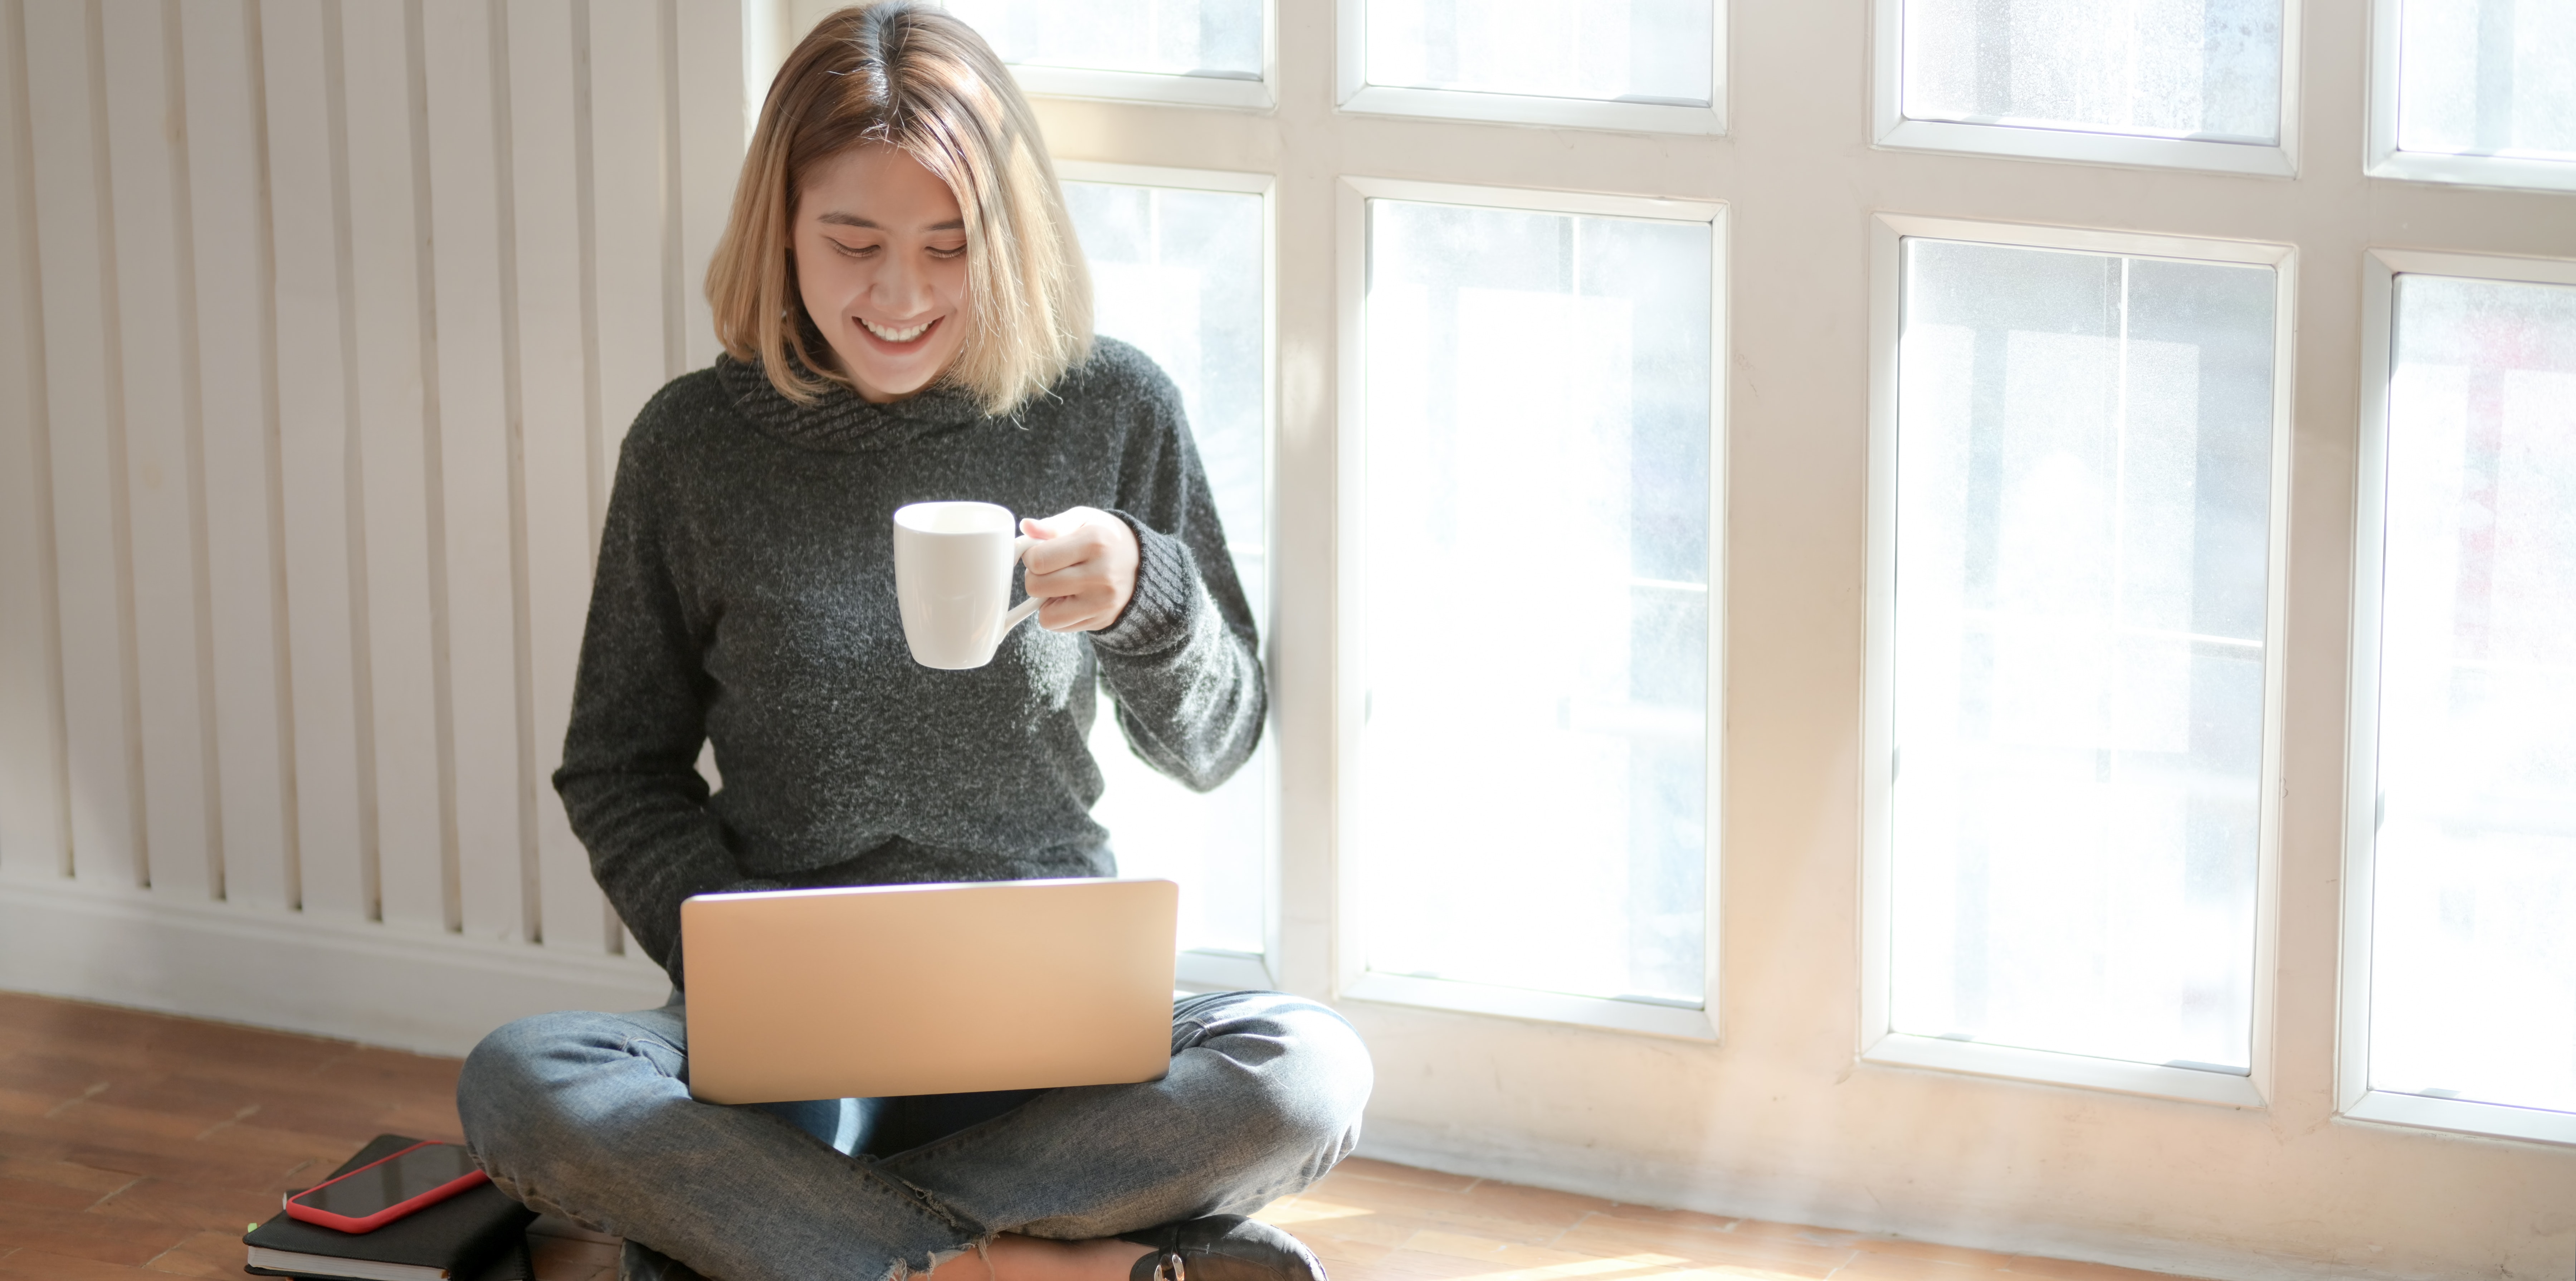 Woman in gray sweater drinking coffee on laptop